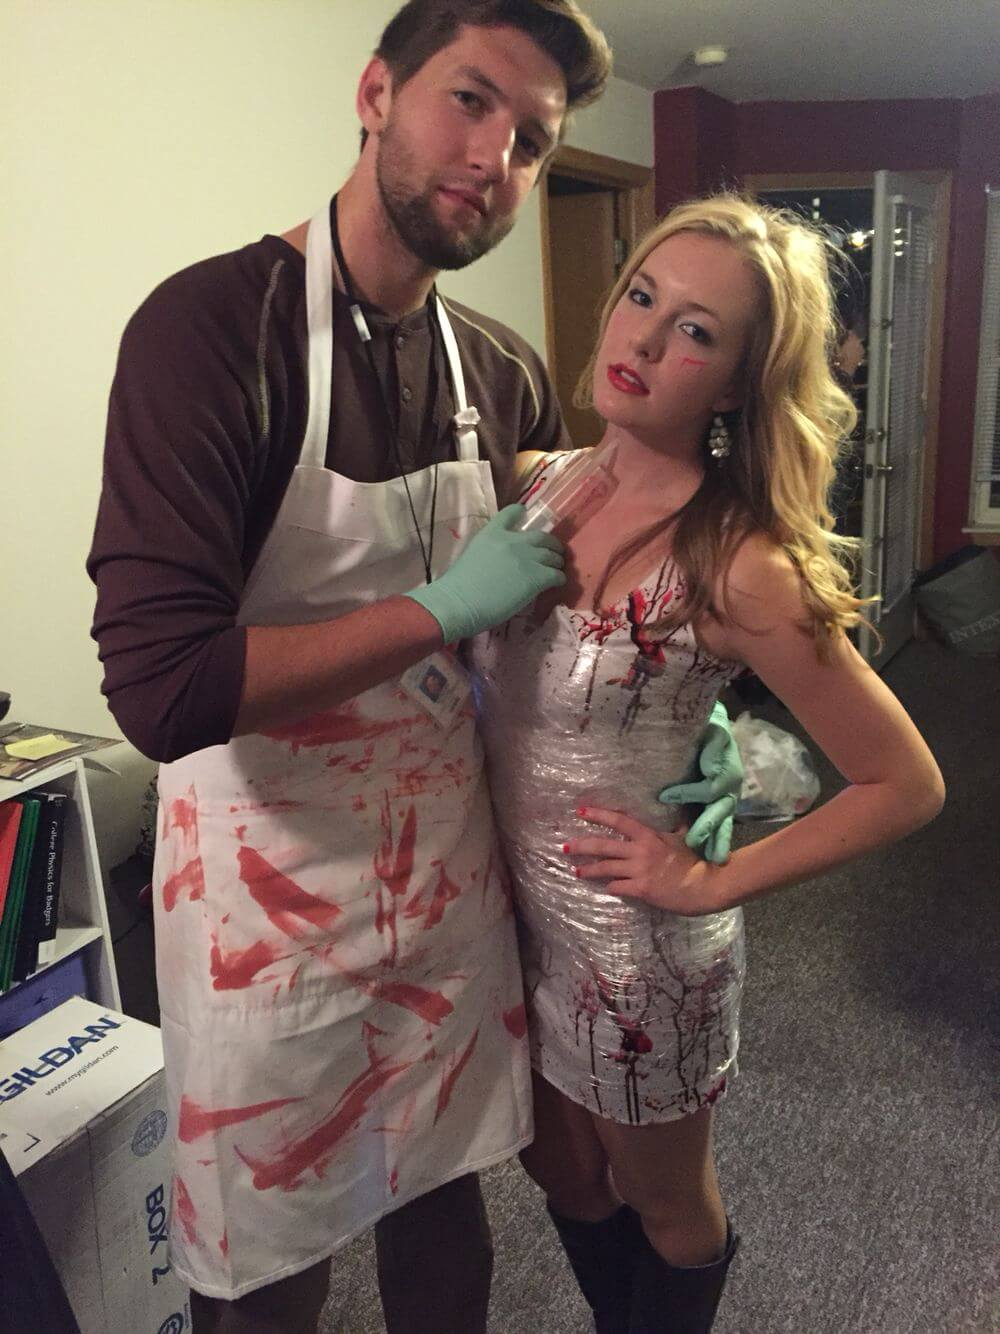 dexter and victim funny halloween costume for couple